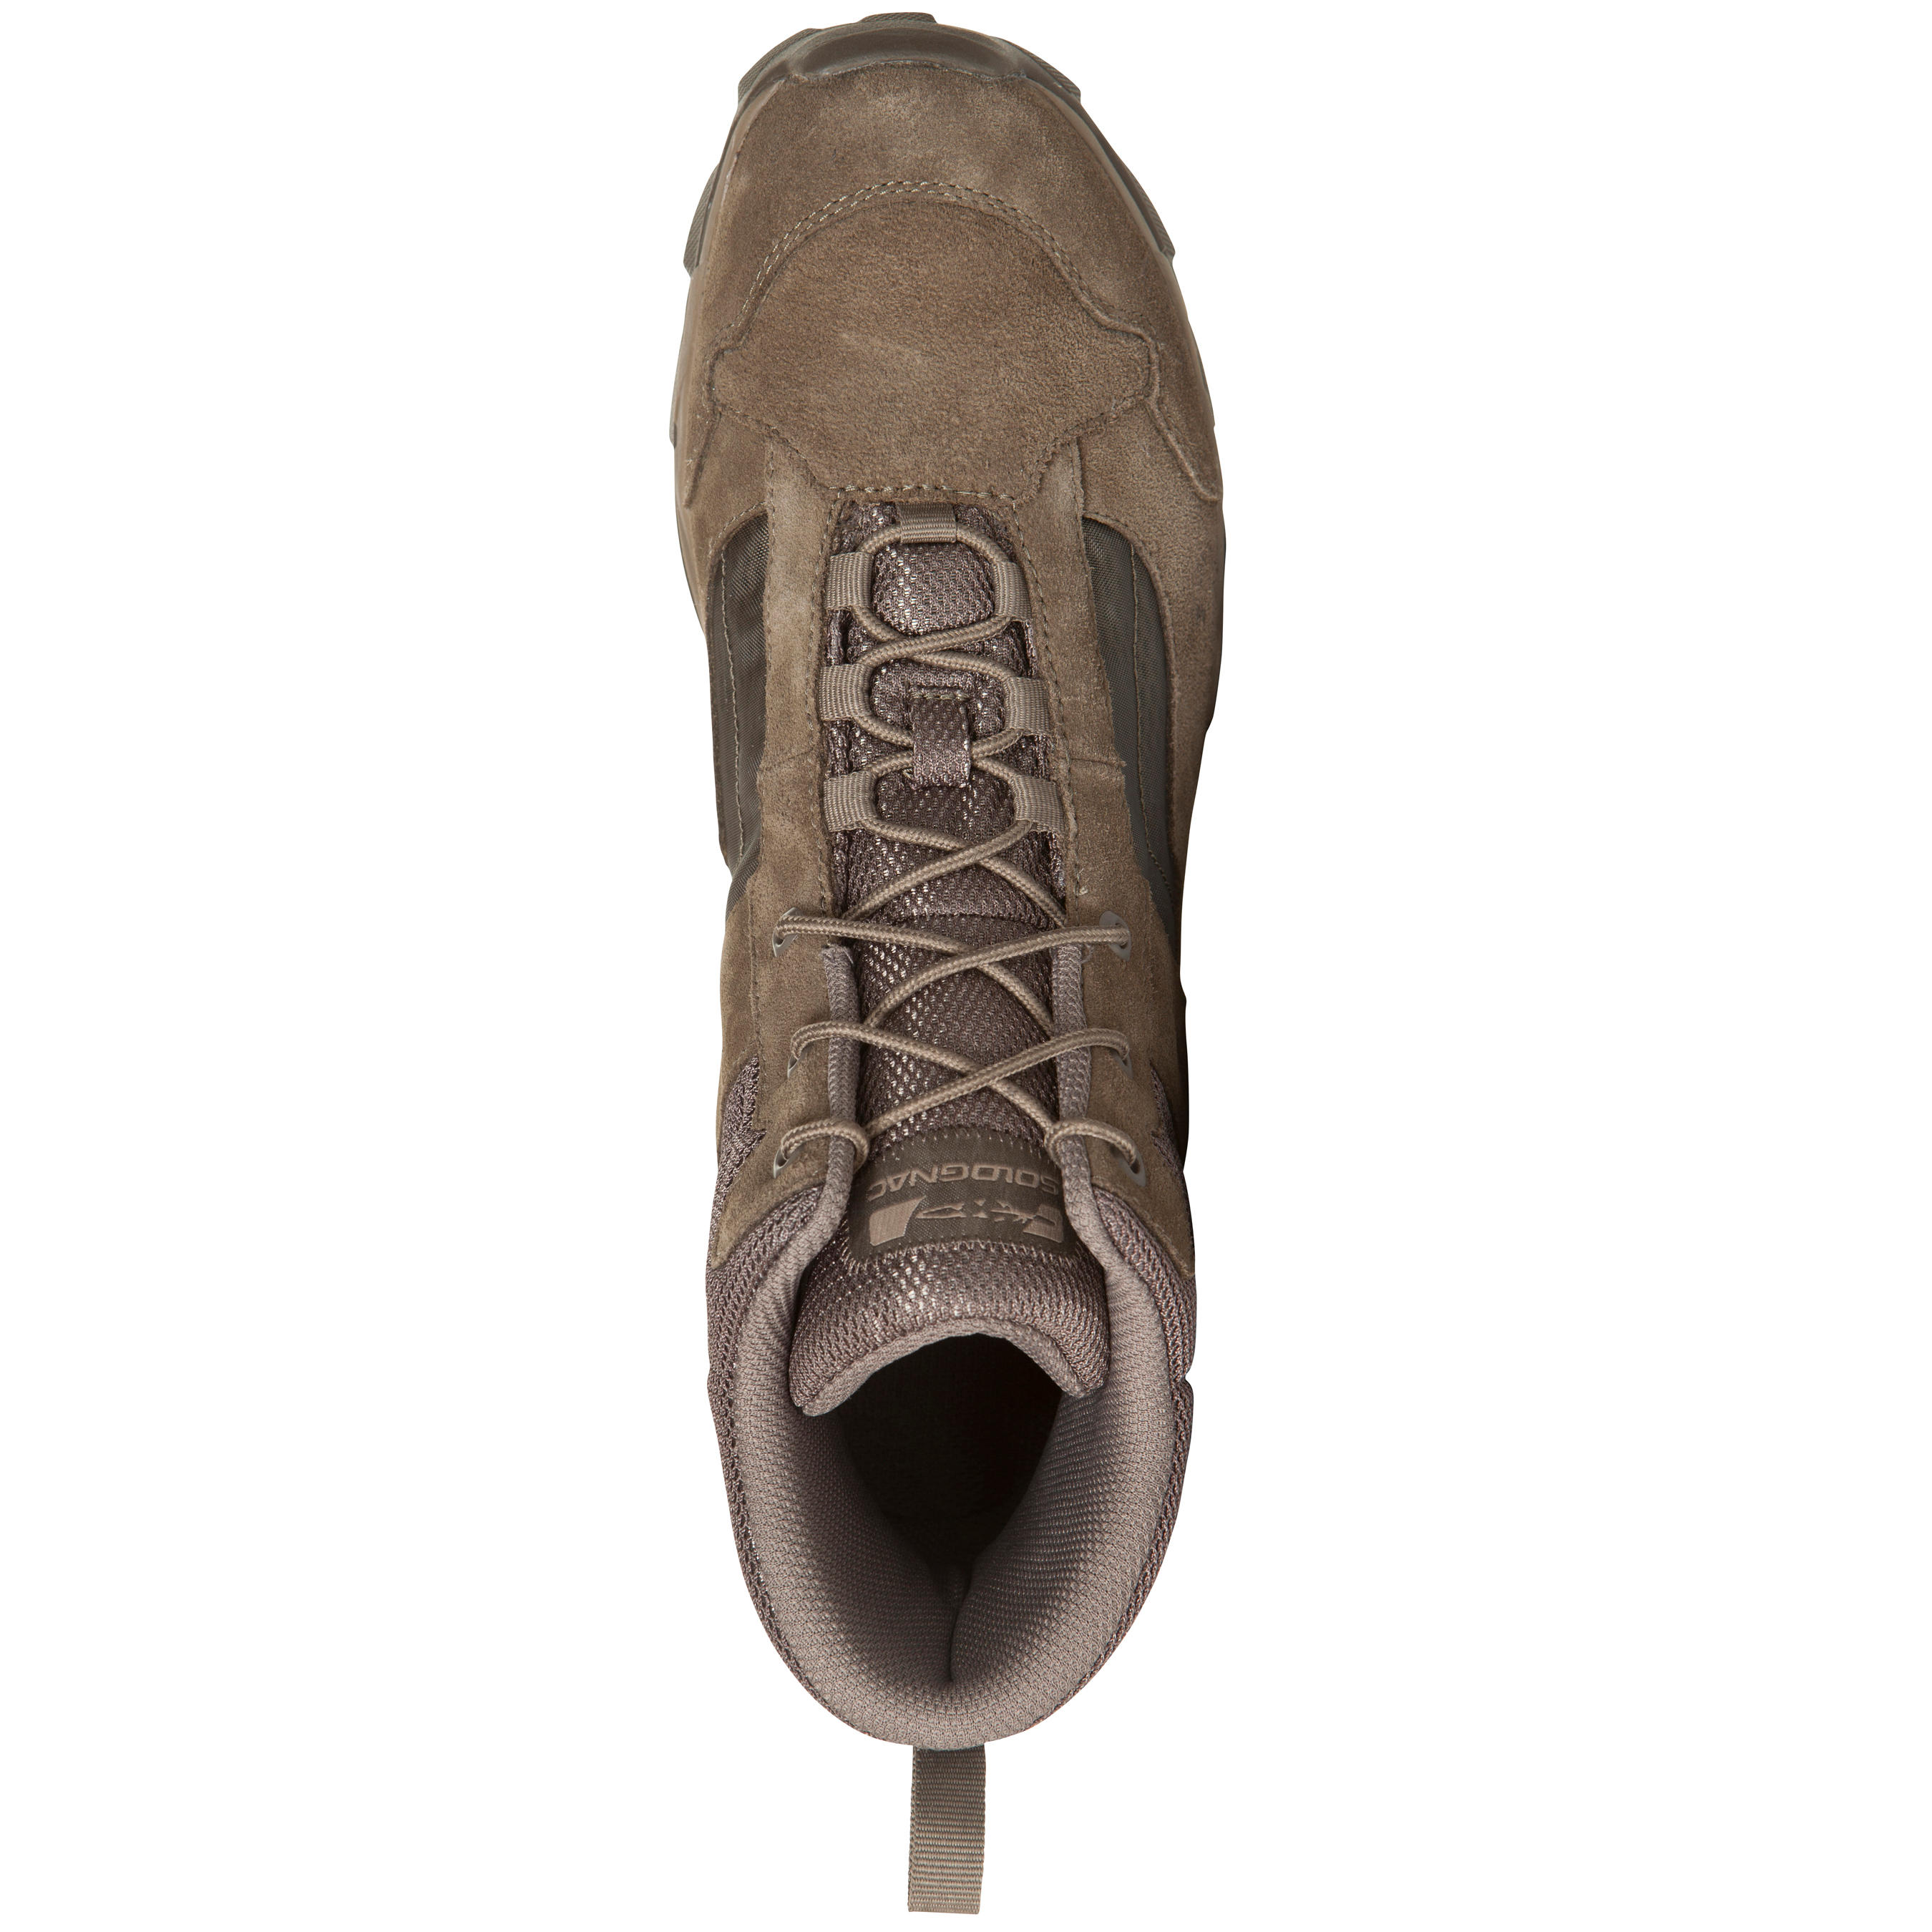 Sporthunt 300 boots beige